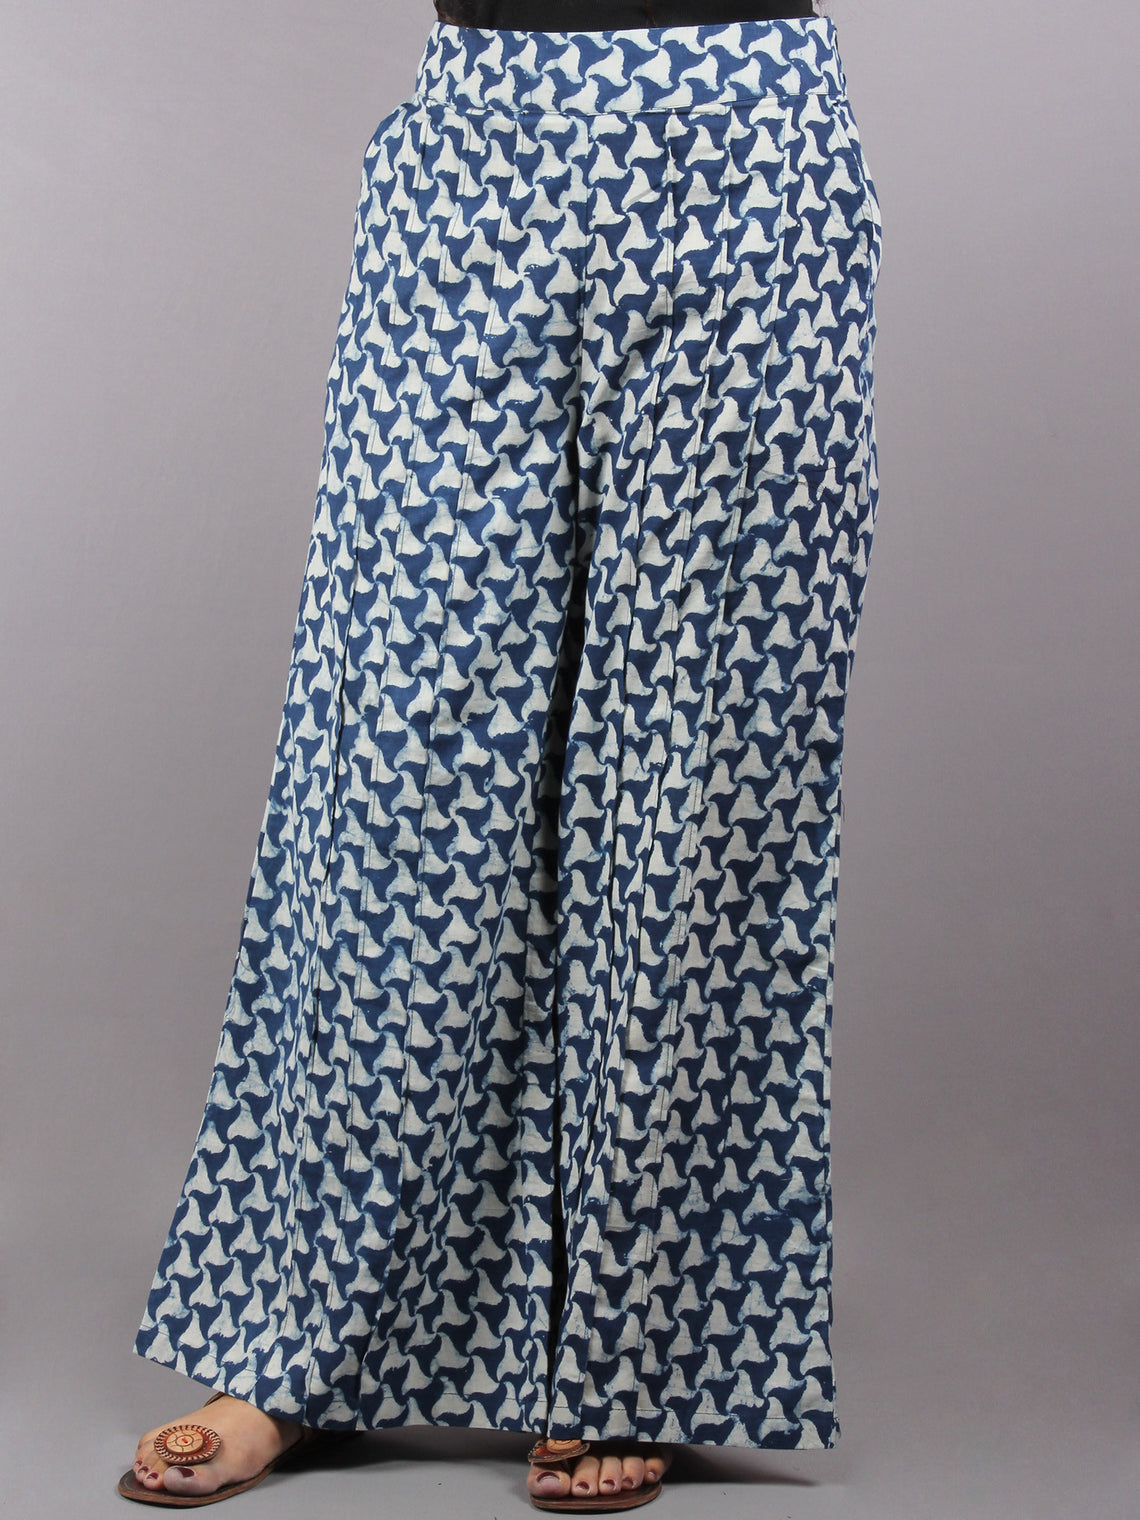 Indigo Hand Block Printed Elasticated Waist Pleated Cotton Palazzo - P1117058